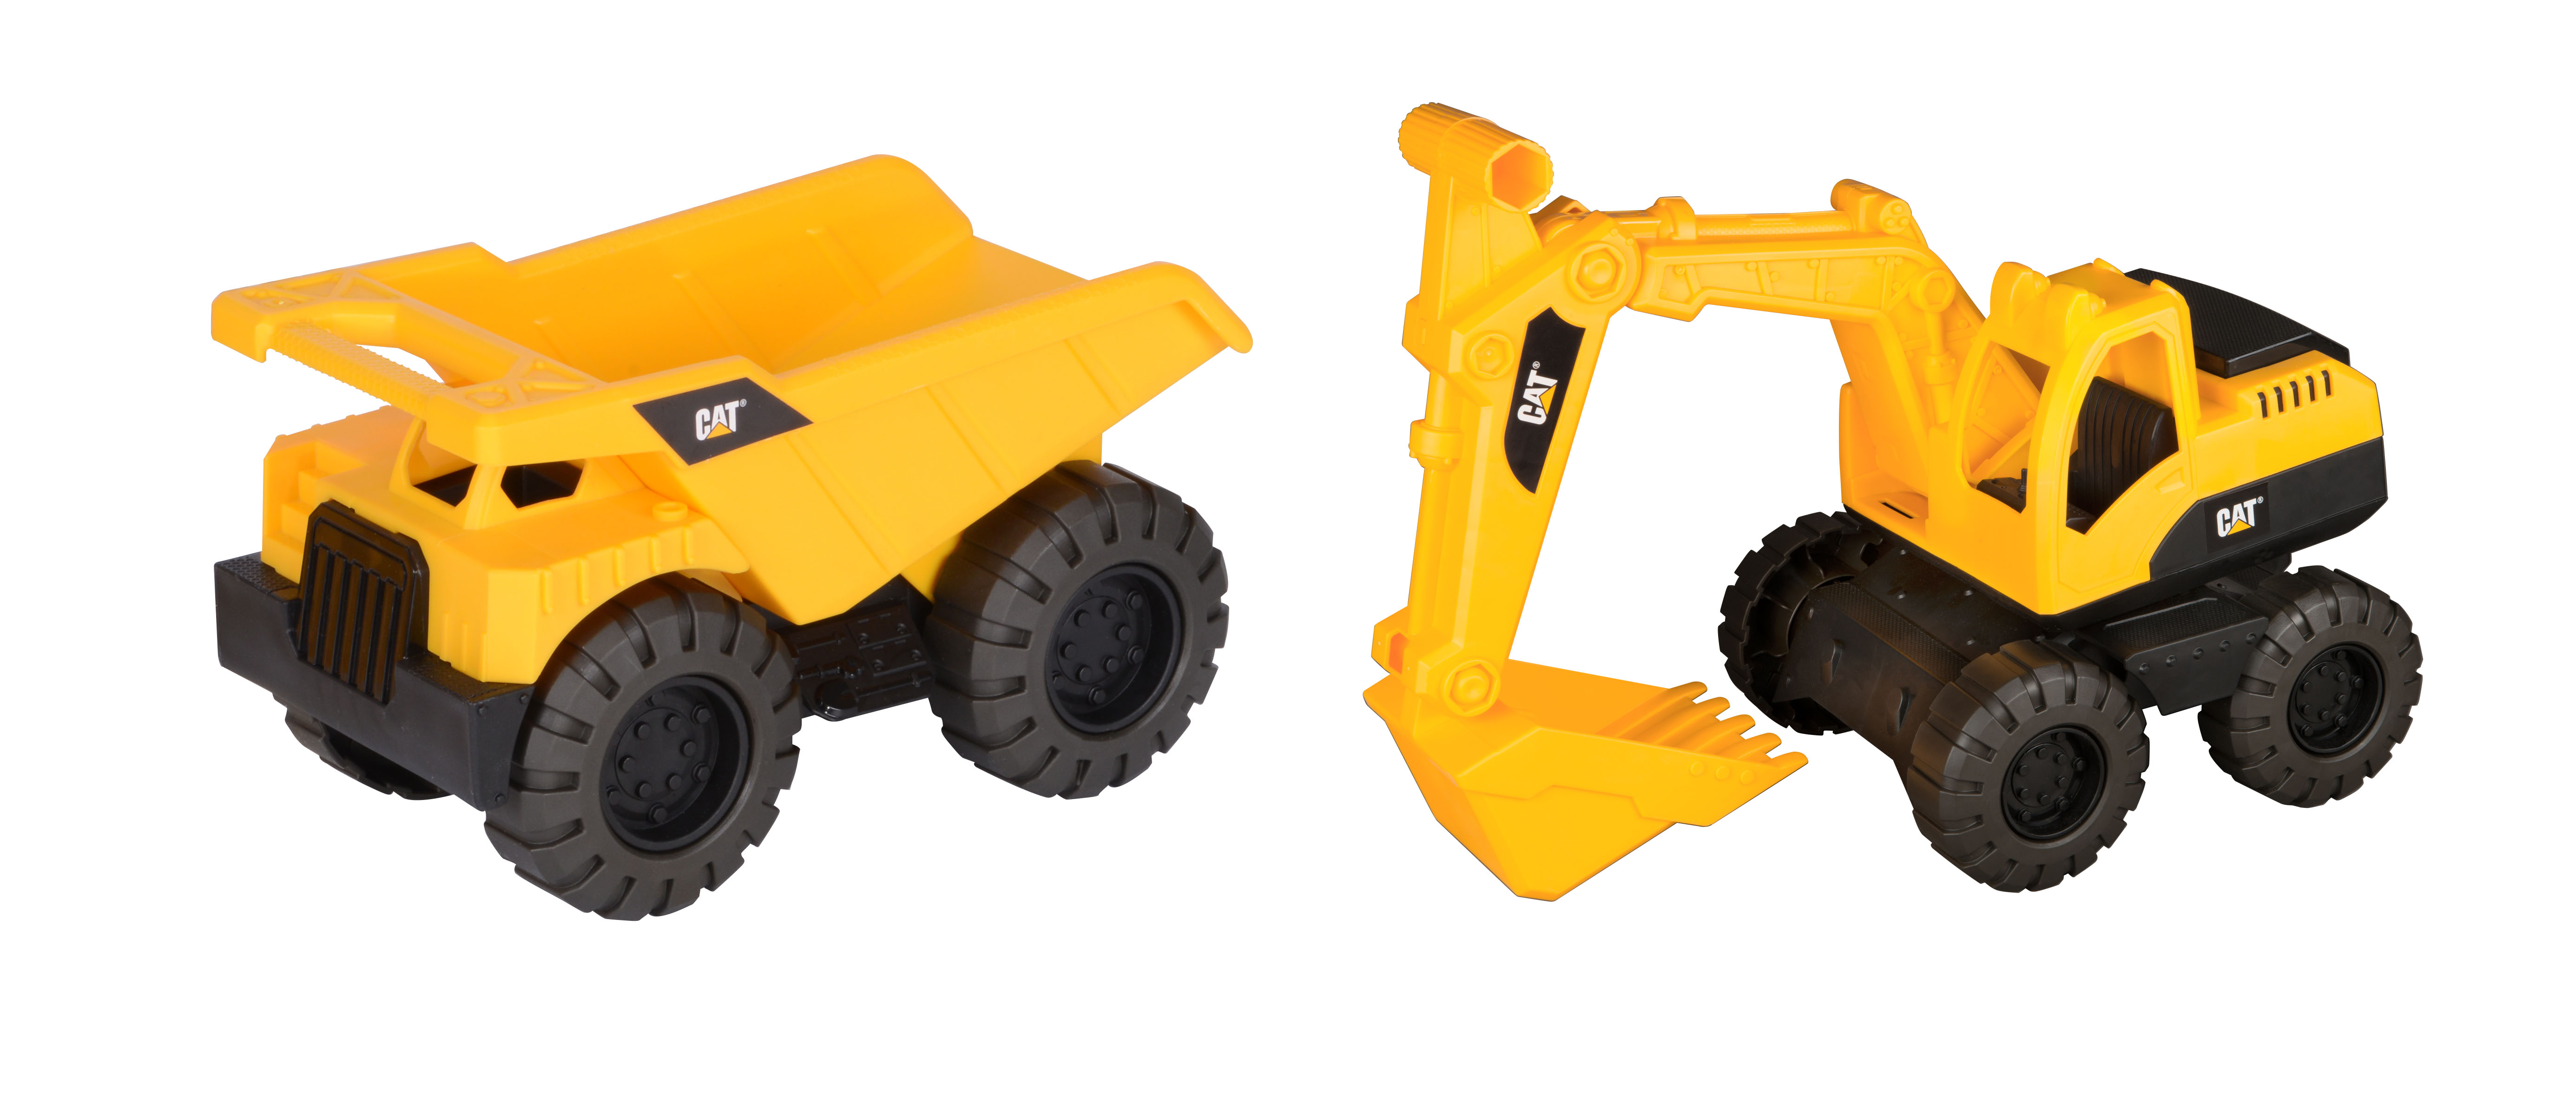 Caterpillar Tough Tracks Mini Worker Dump Truck and Excavator 2 pack by Toy State International Limited